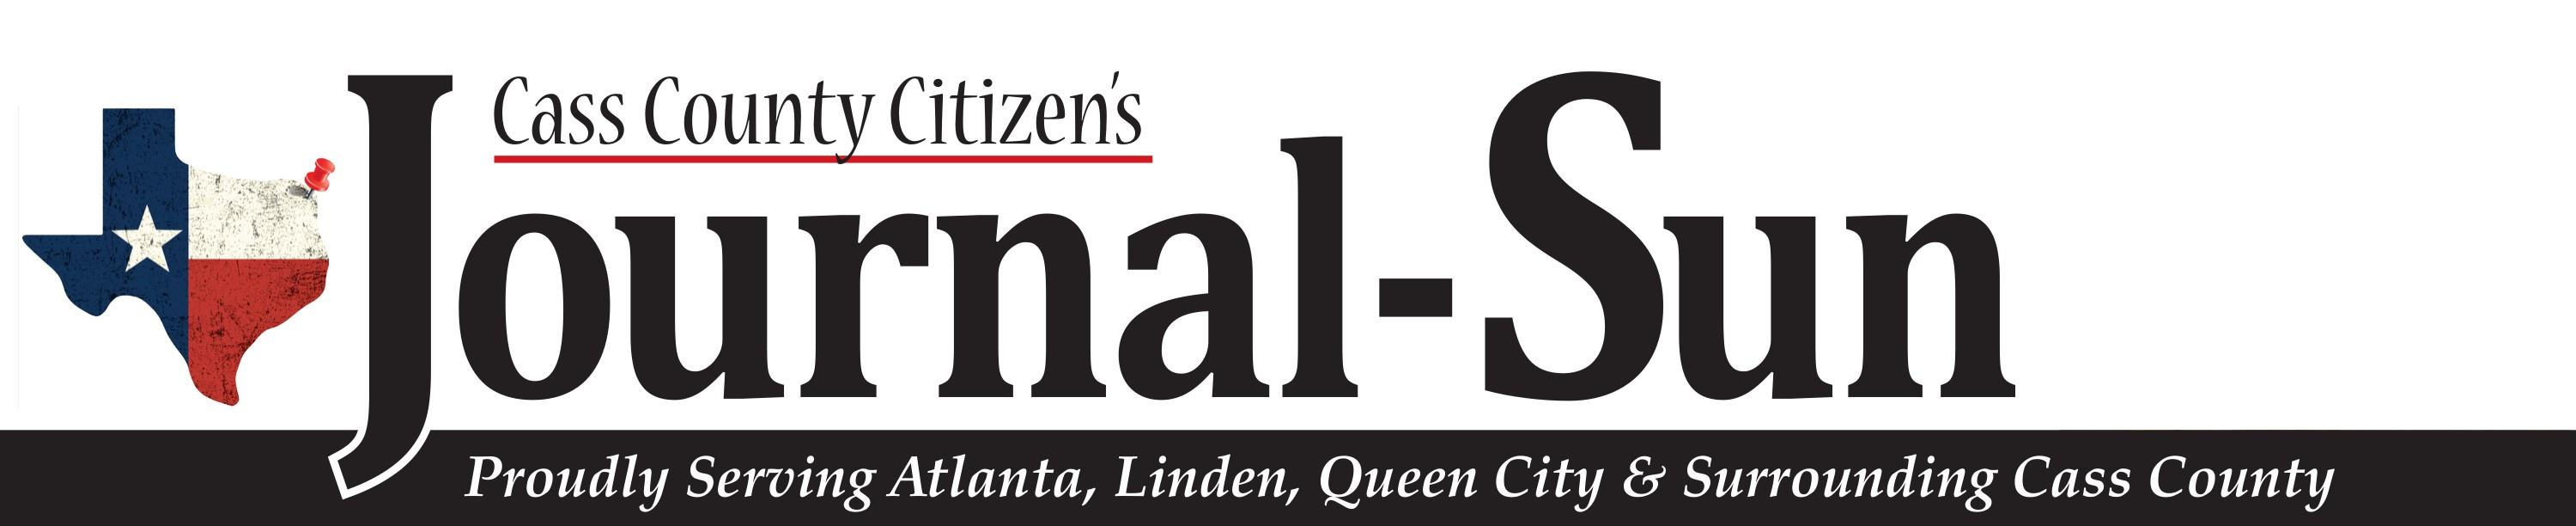 Cass County Citizens Journal-Sun Logo